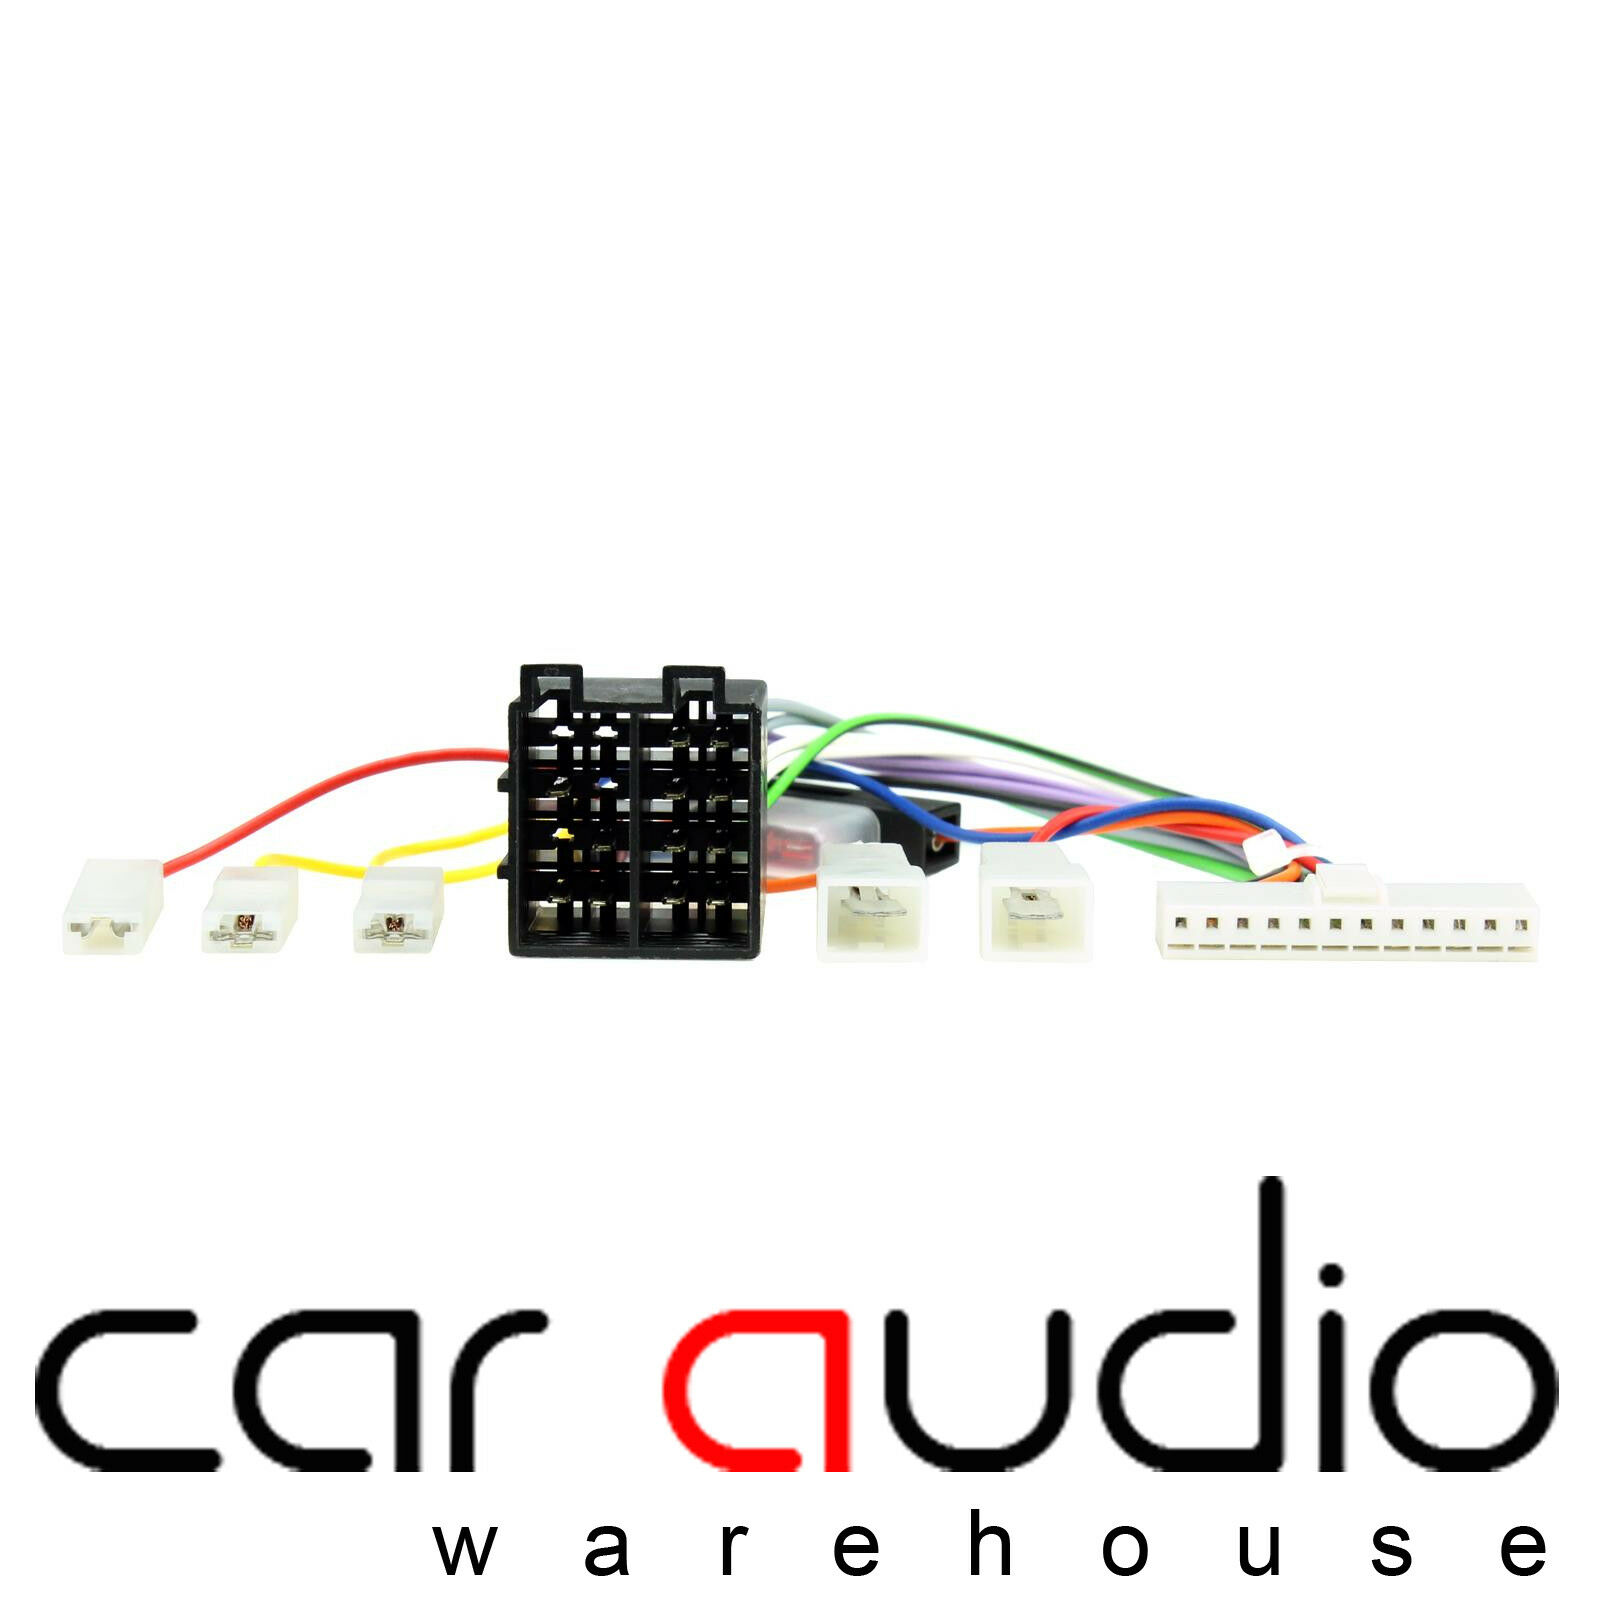 Pioneer 12 Pin Iso Head Unit Replacement Car Stereo Wiring Harness Ct21pn01 1 Of 1free Shipping